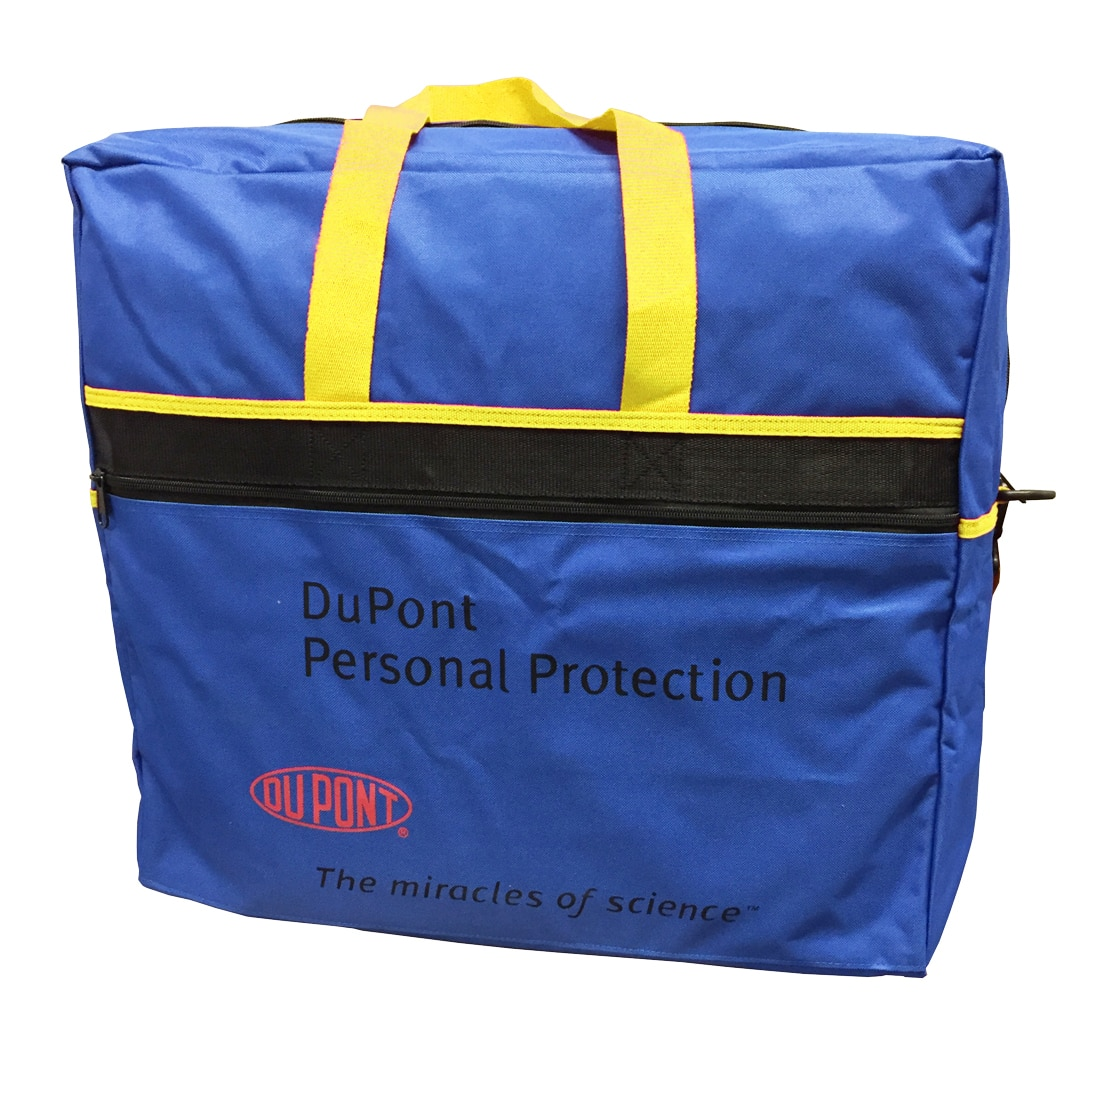 DuPont Tychem 10000 Level A Training Suit Storage Bag image